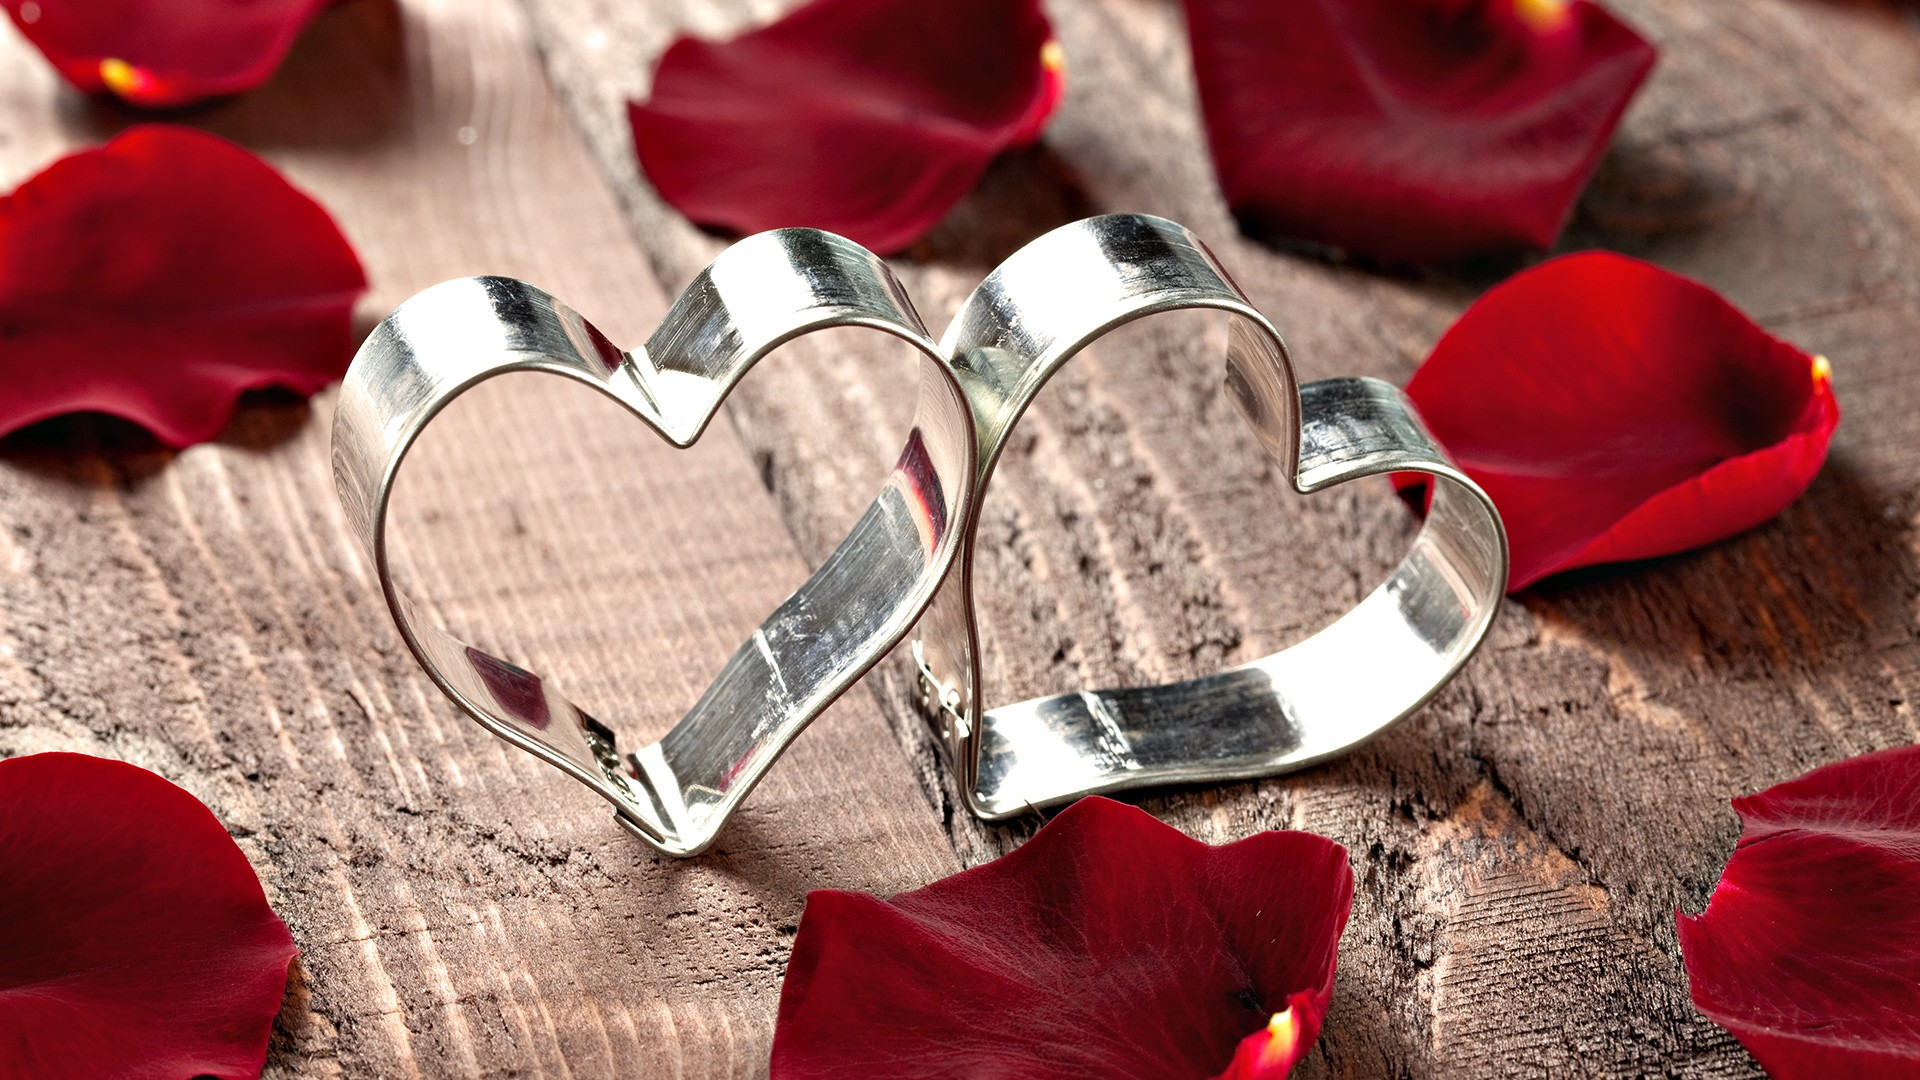 Steel heart and rose petals